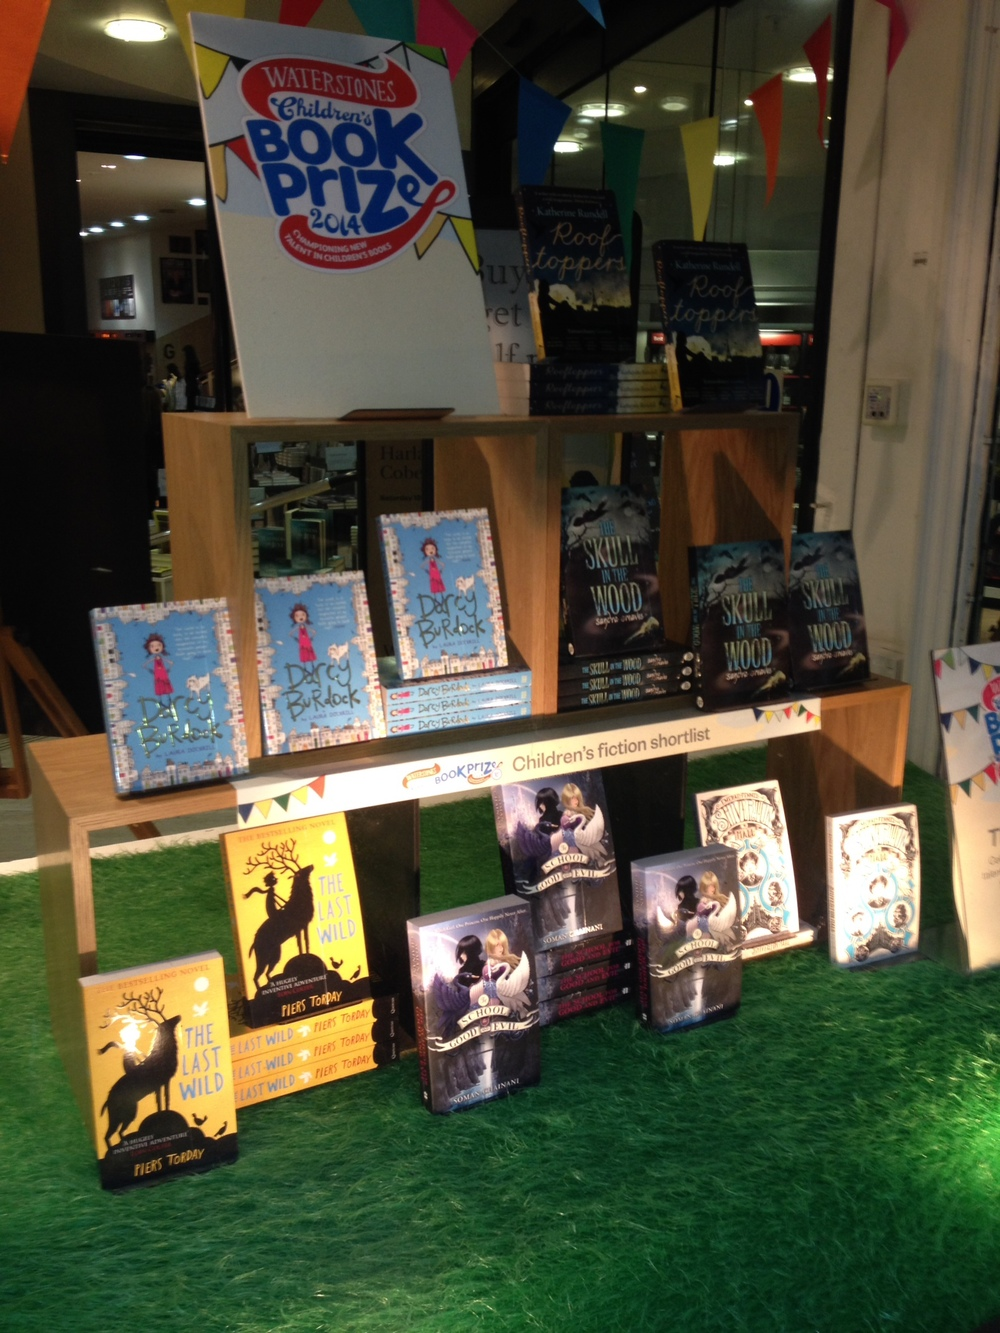 All the nominated books on display in the front window of Waterstones Piccadilly - amazing!